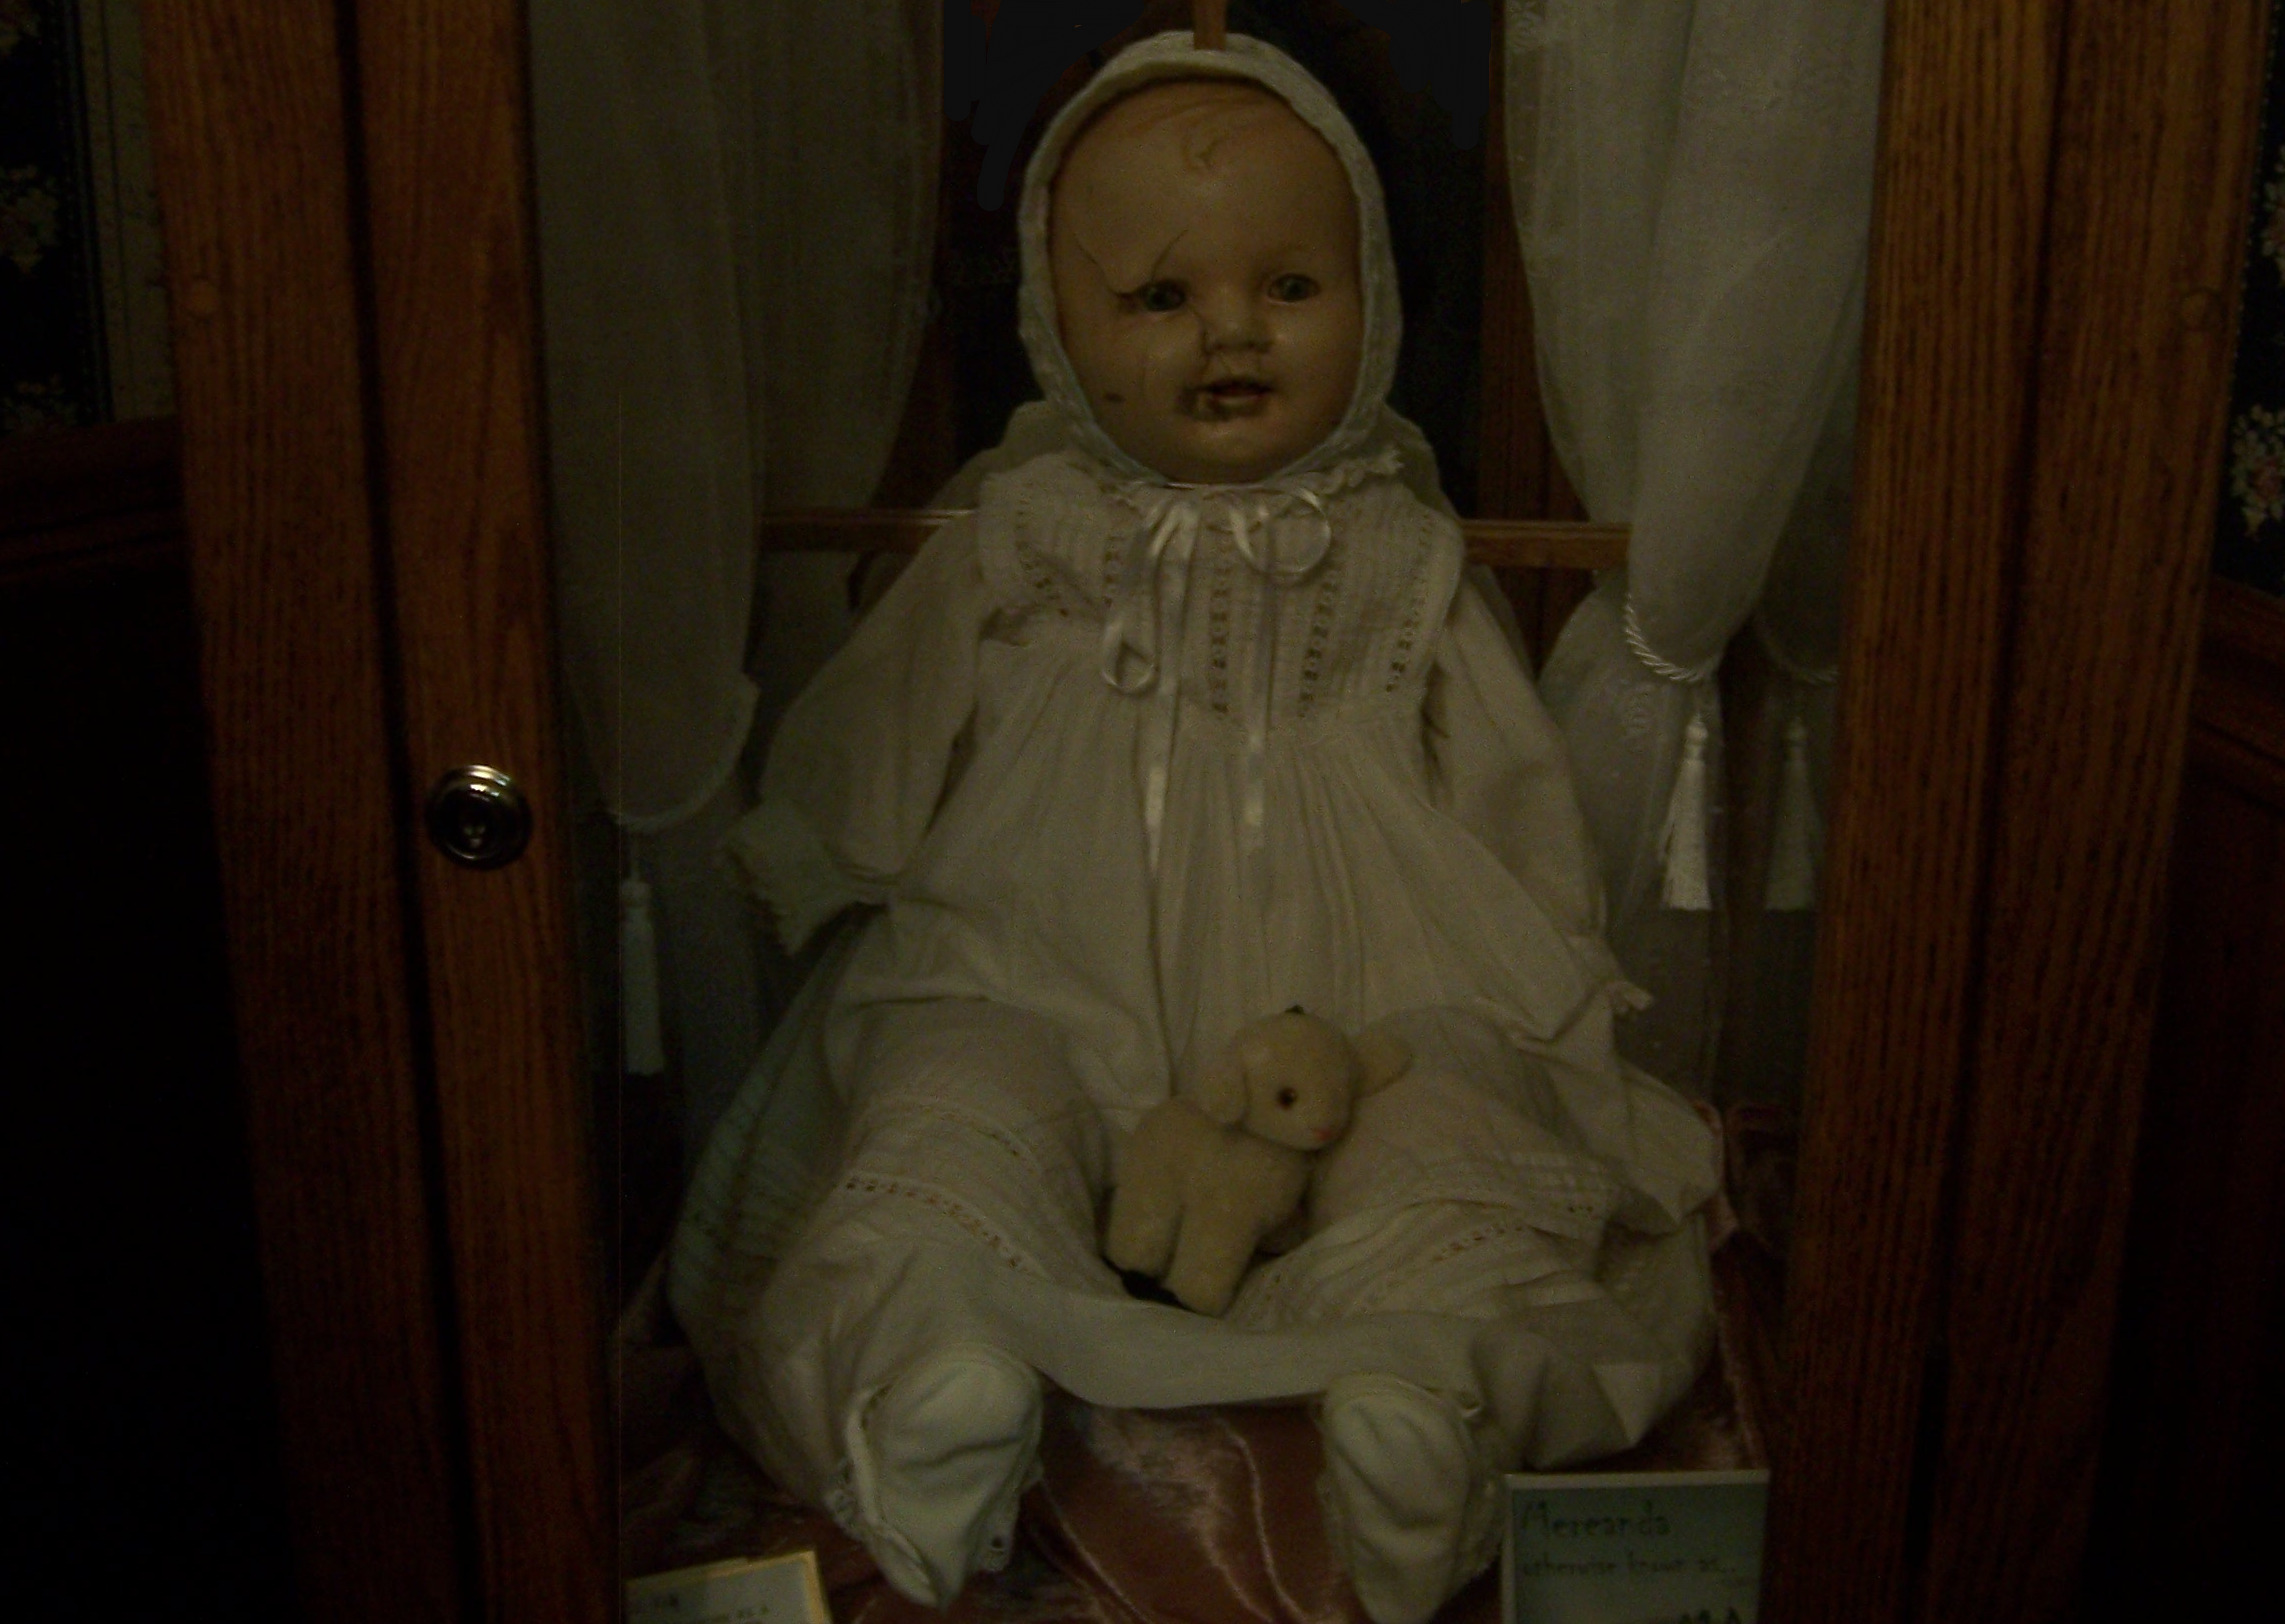 Cursed Mandy the doll